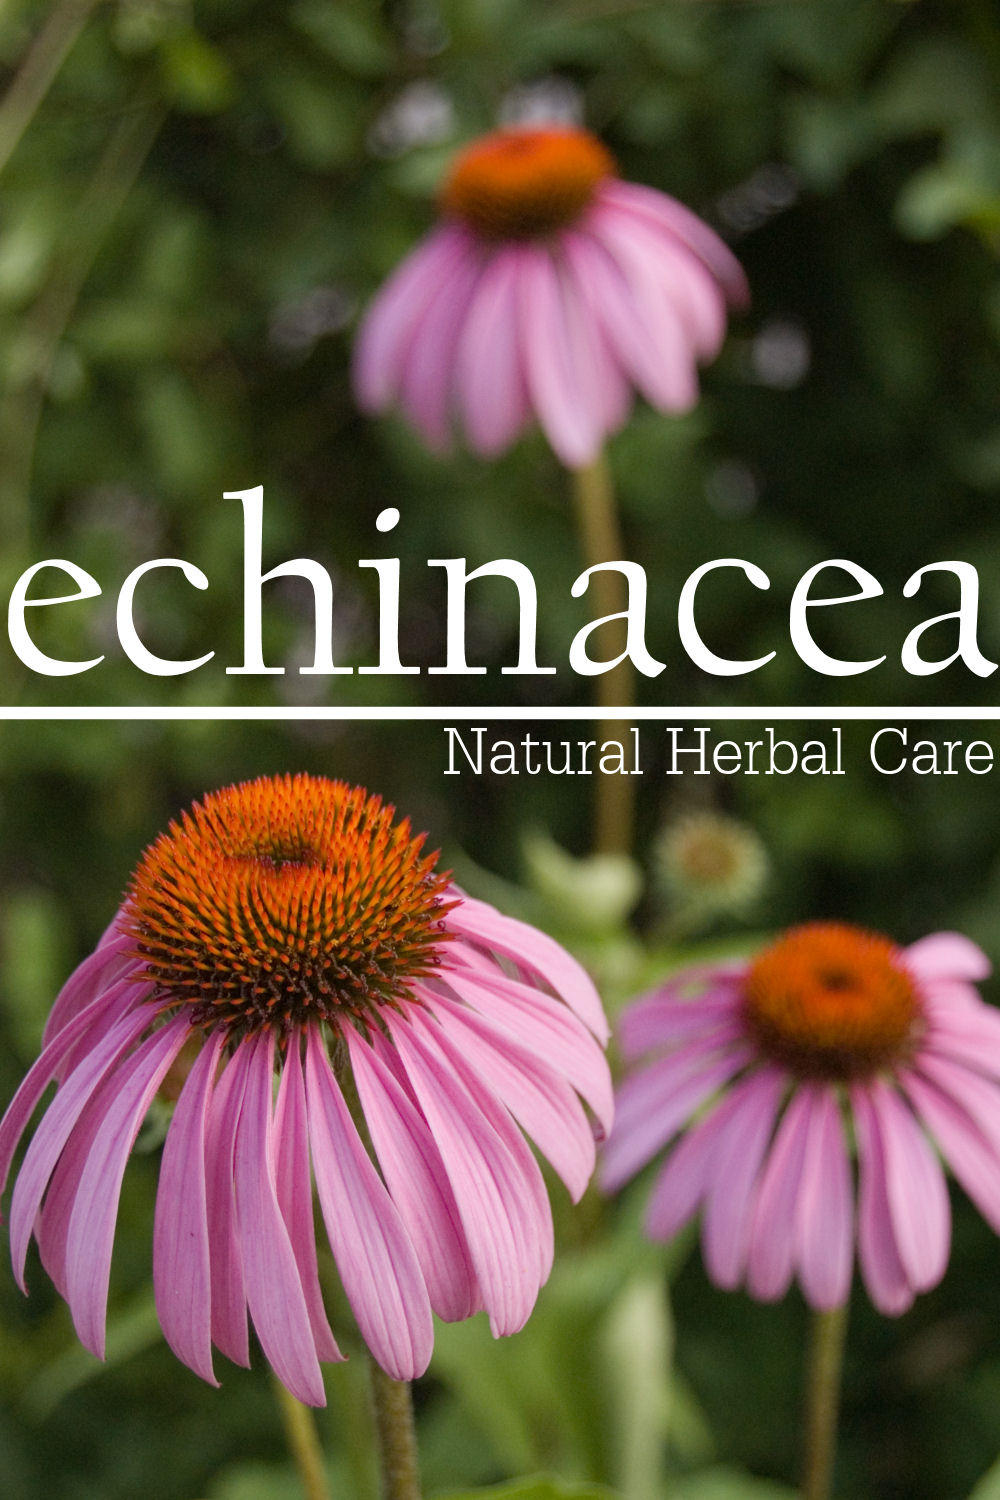 Echinacea - Natural Herbal Care